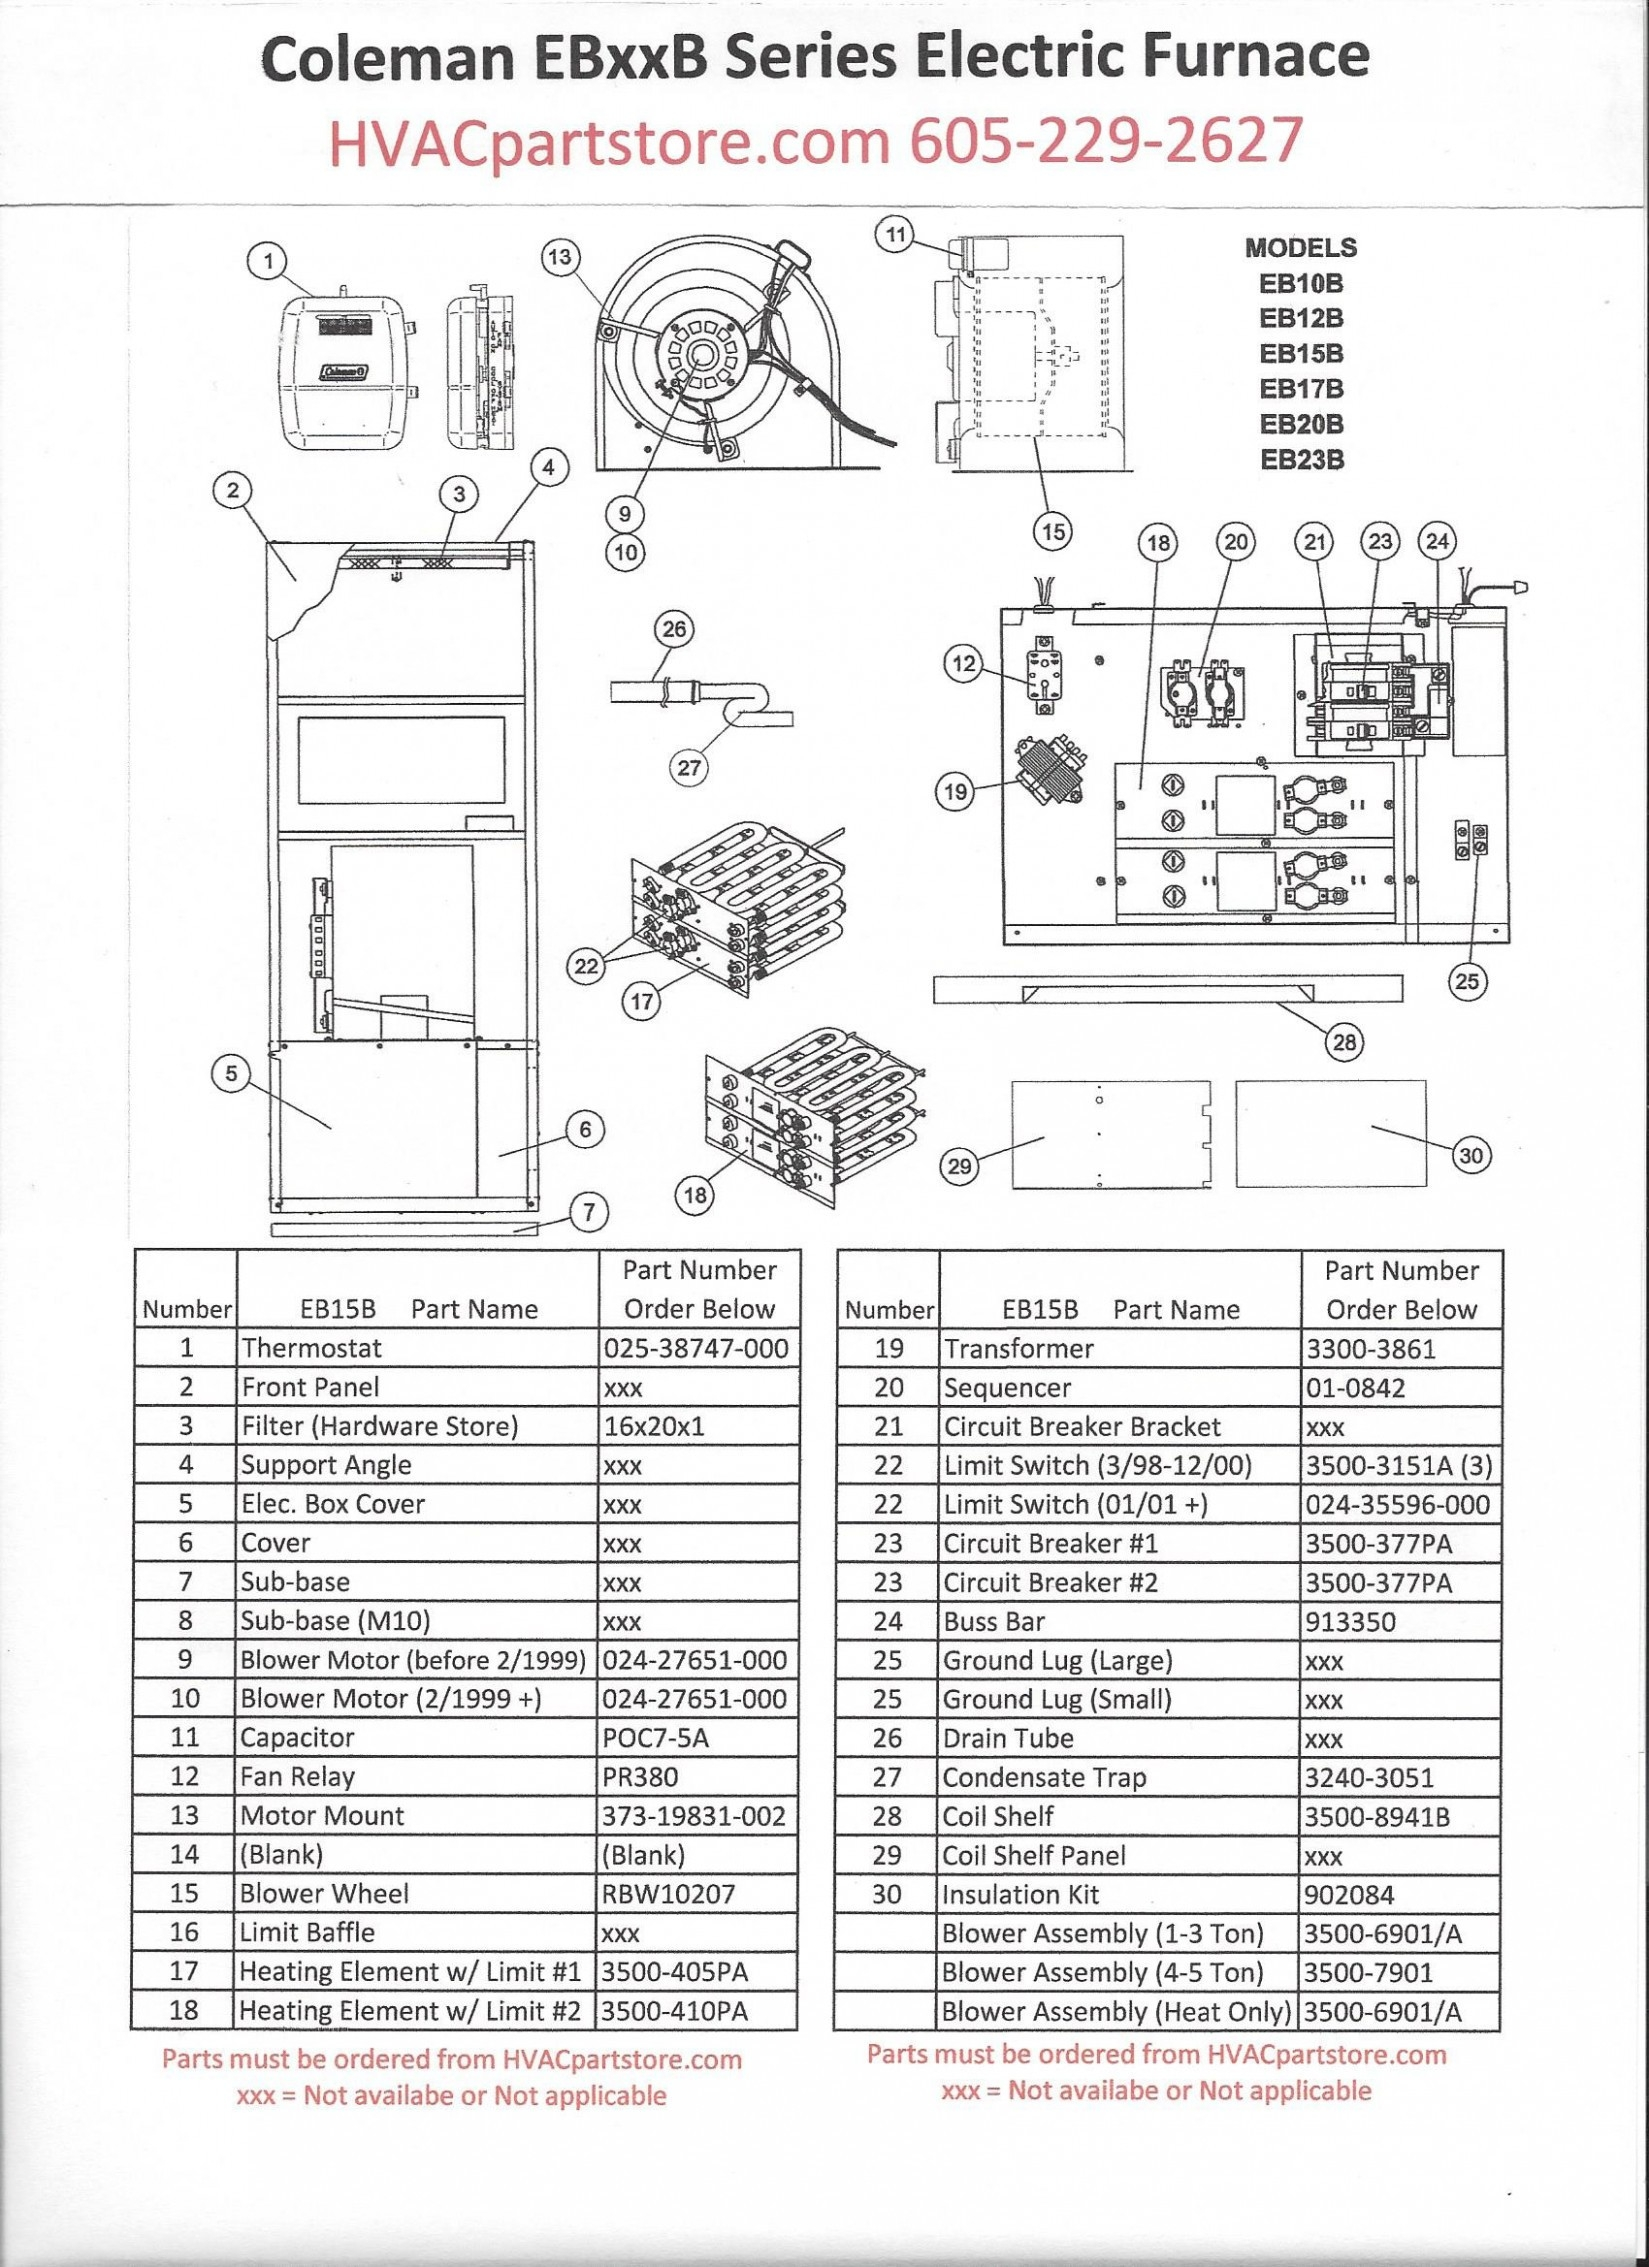 central electric furnace eb15b wiring diagram Download-Central Electric Furnace Eb15b Wiring Diagram Refrence Goodman Electric Furnace Diagram Wiring Diagram Portal • 7-h